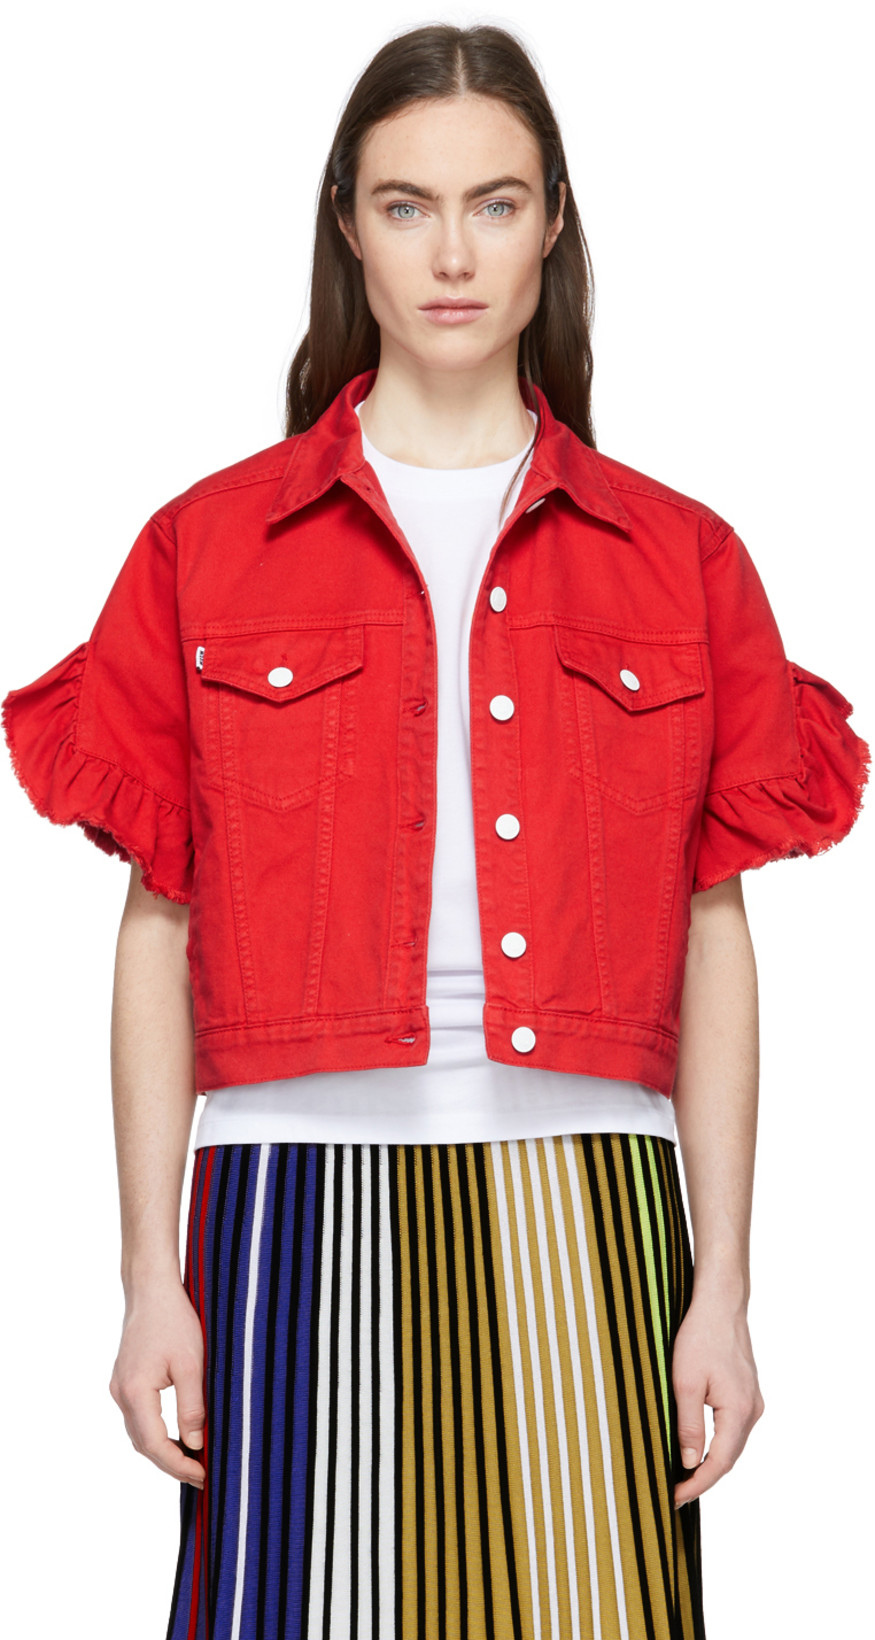 2fea5d43fa07 Up Your Denim Game With A Fashion-Forward Jean Jacket - theFashionSpot